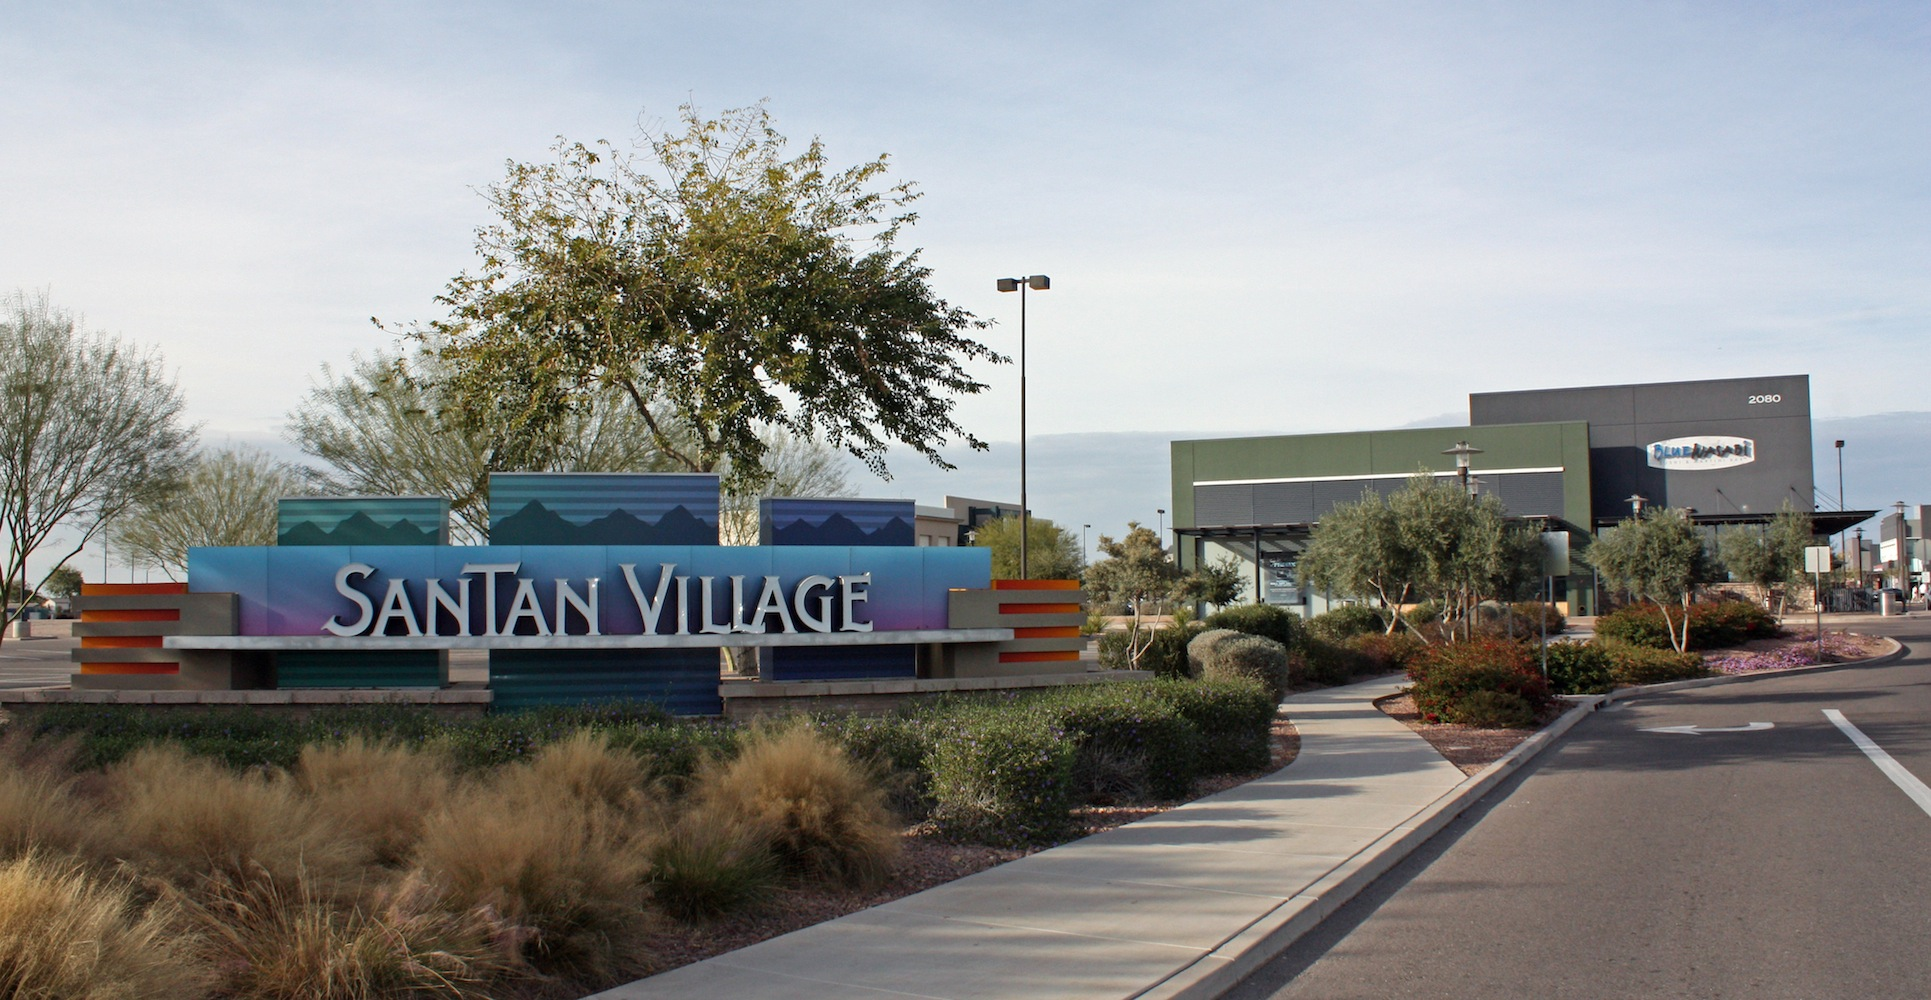 Santan village blue wasabi entrance